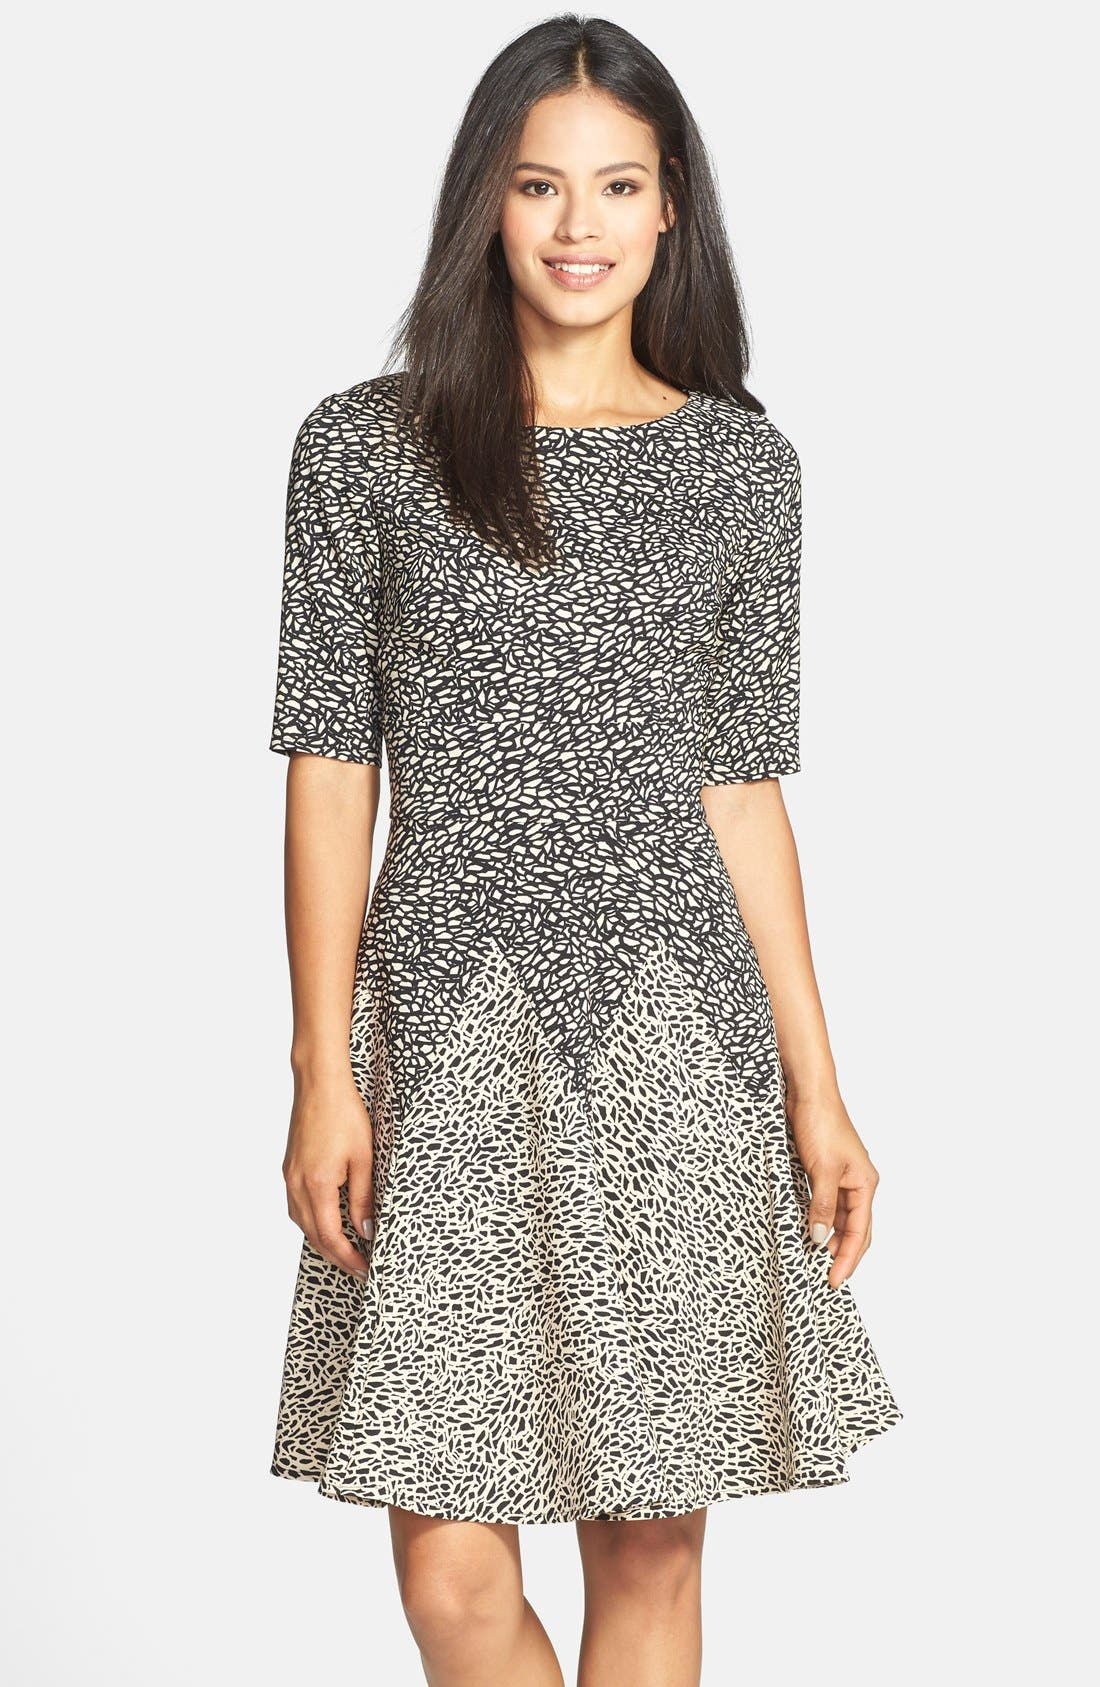 Alternate Image 1 Selected - Gabby Skye Print Ponte Fit & Flare Dress